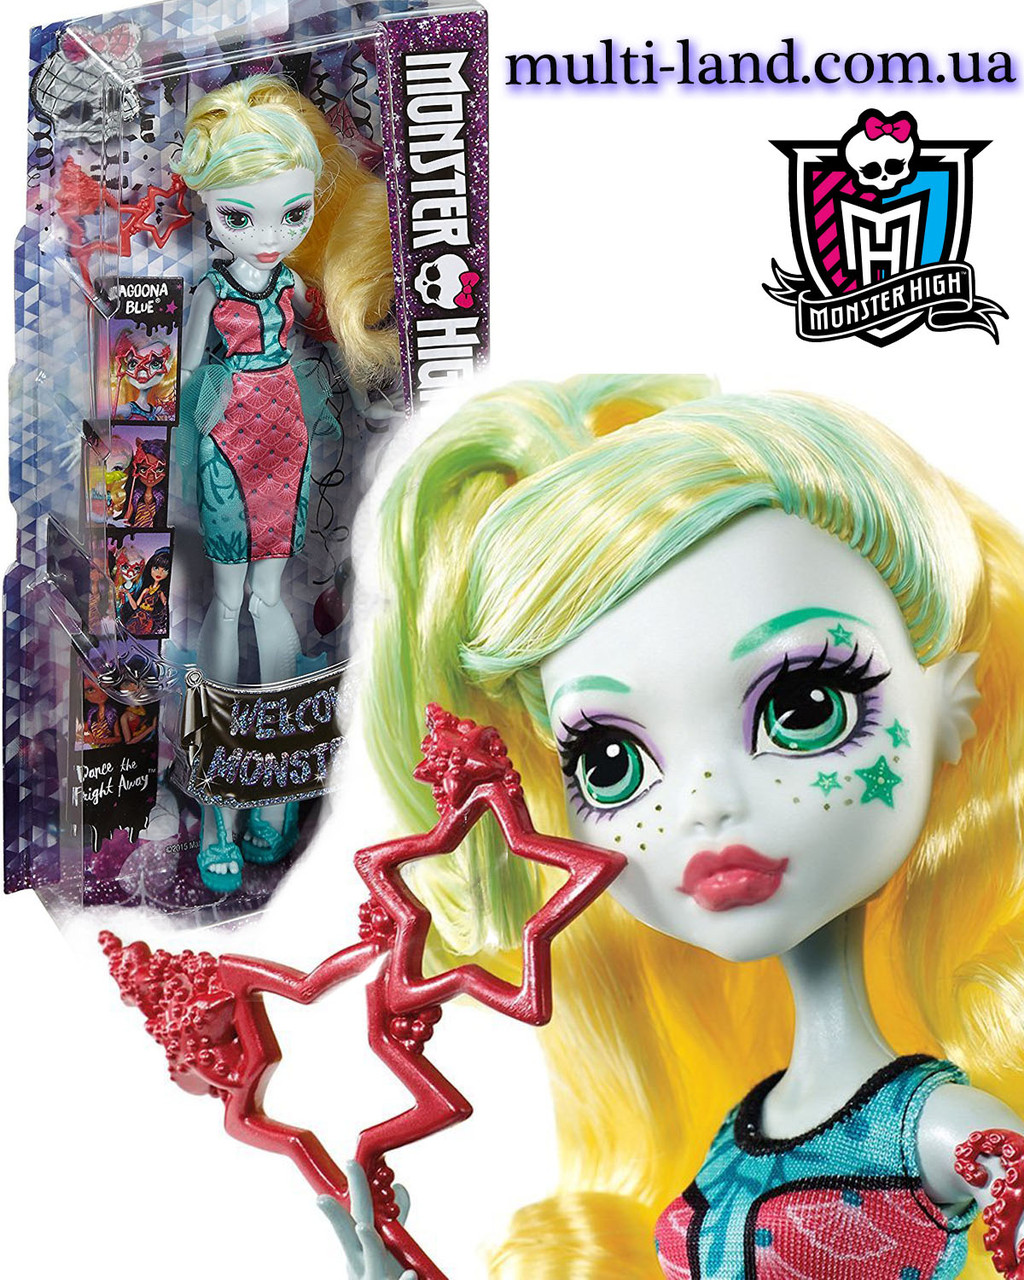 Лагуна Блю Кукла Монстер Хай серии Школа Монстров Танец без страха, Monster High Dance The Fright Away Lagoona